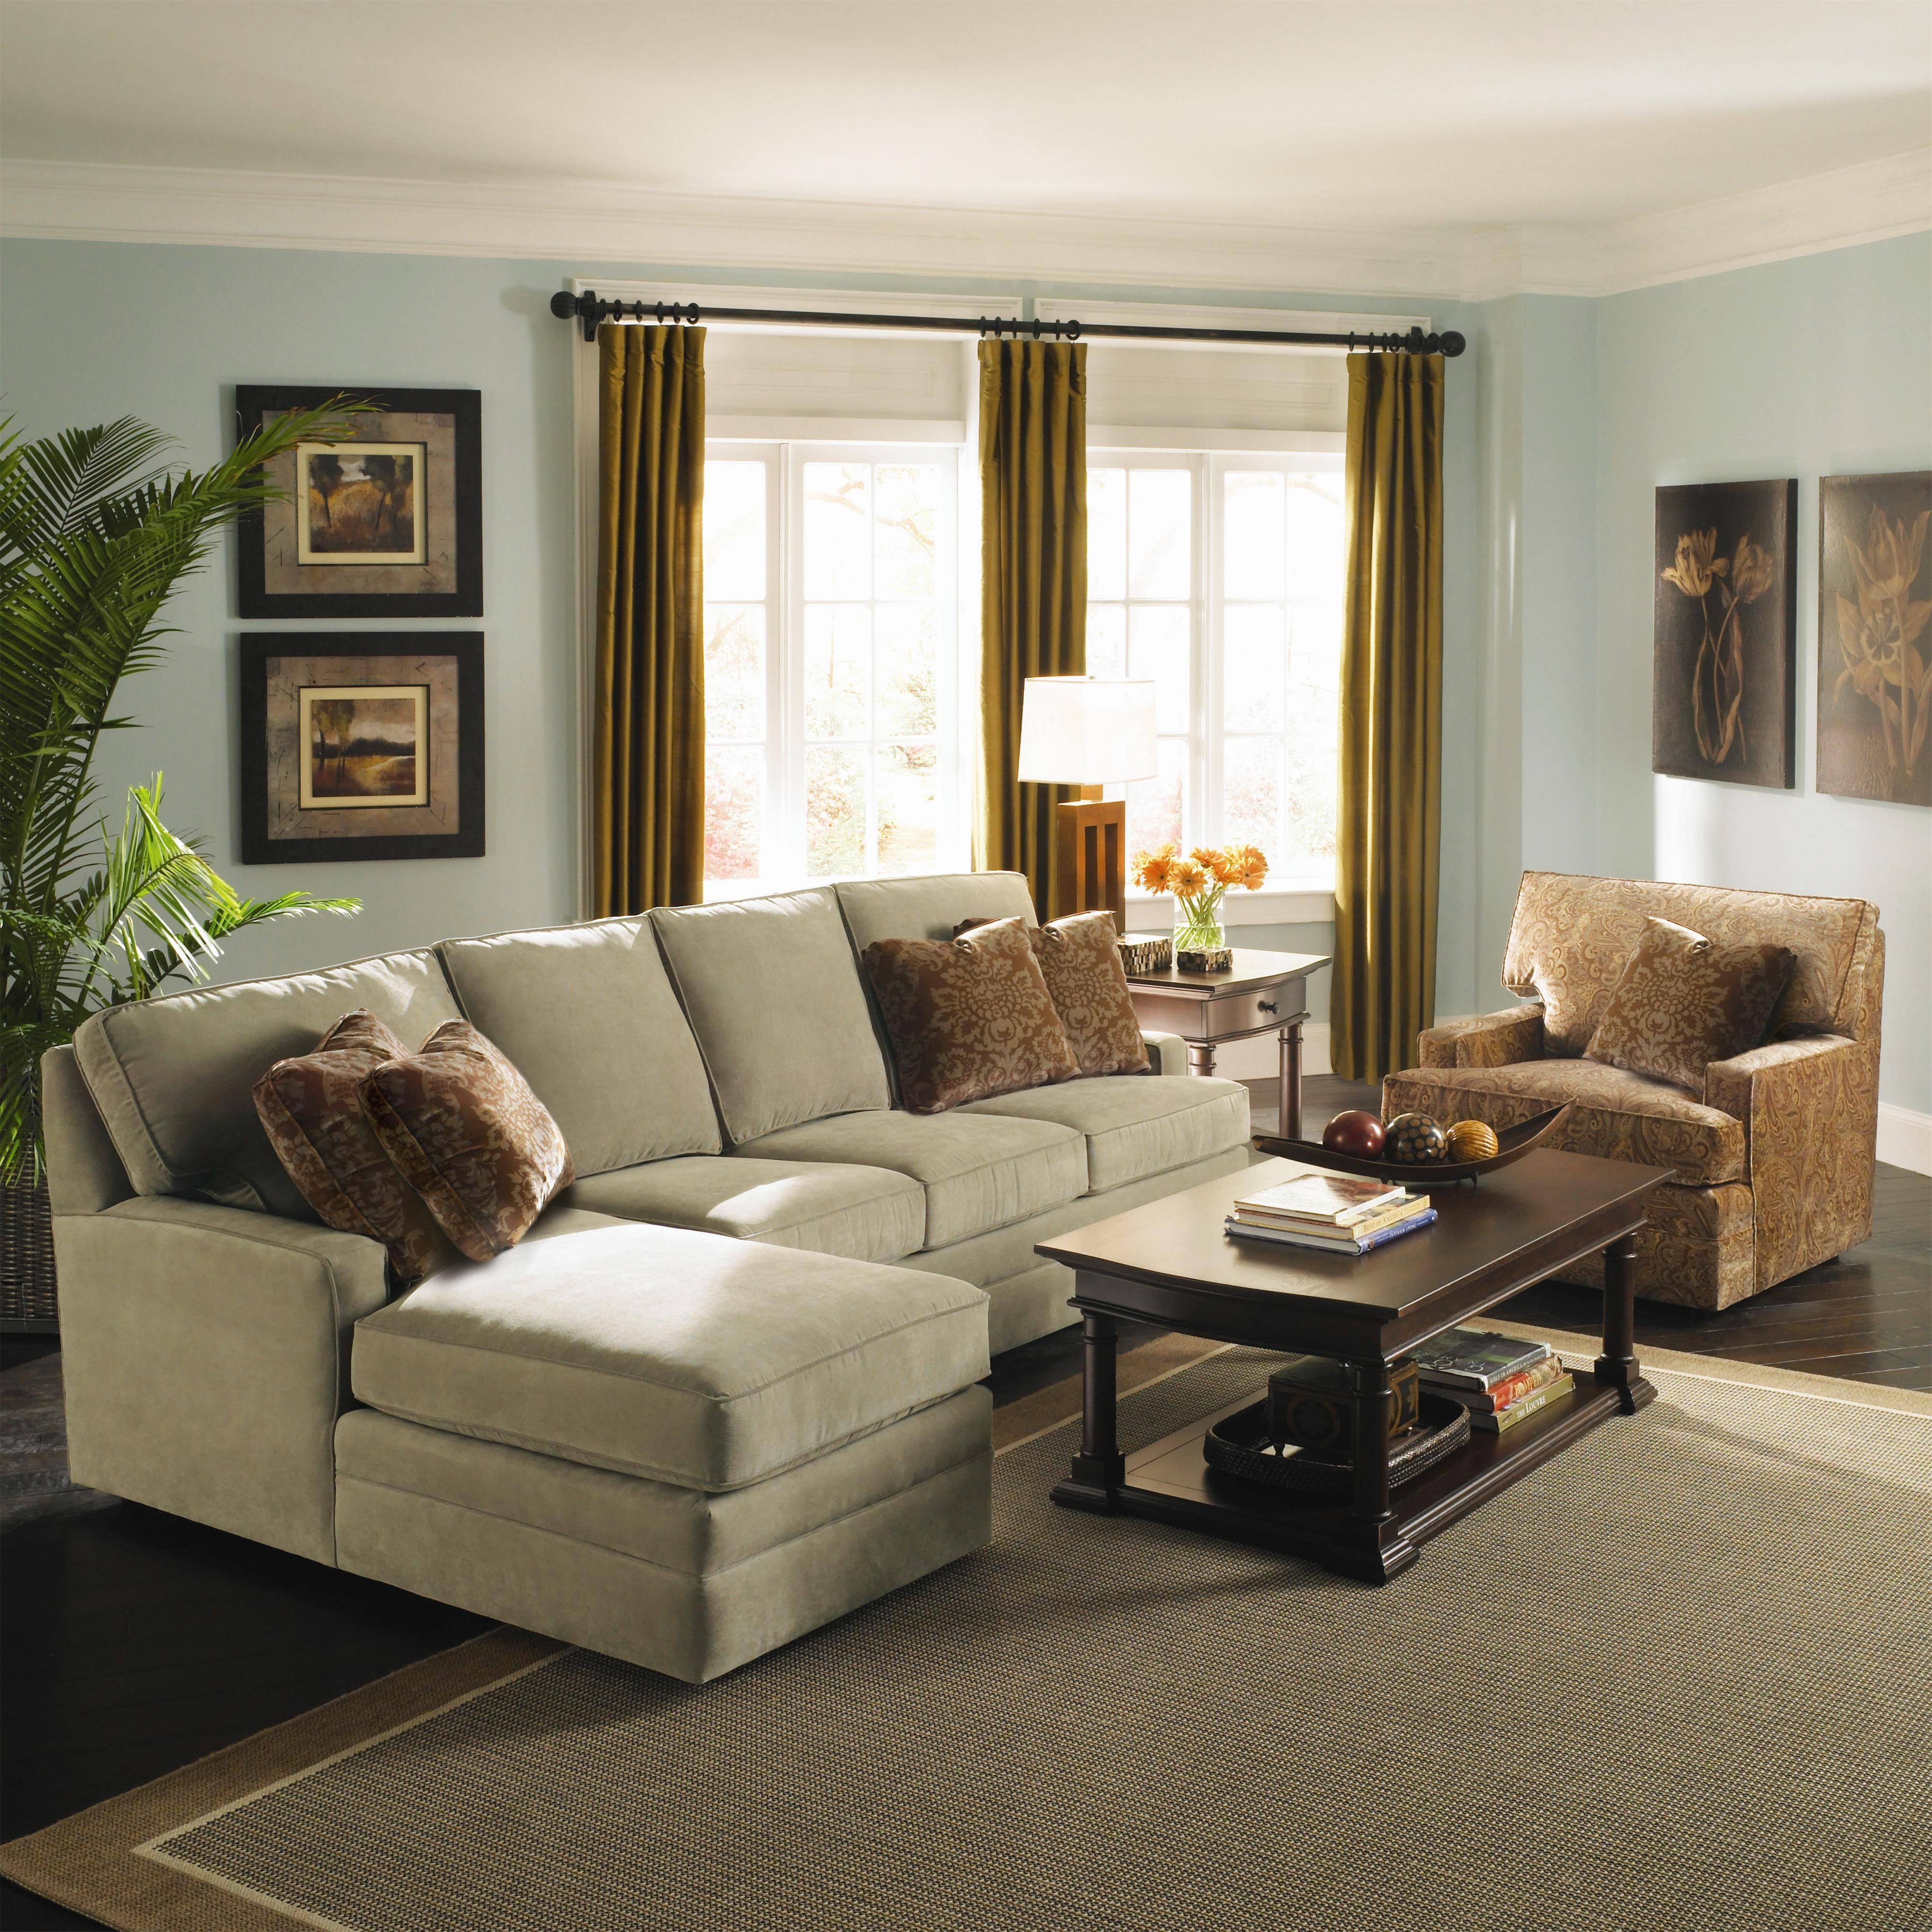 Custom Select Upholstery 2 Piece Sectional With Chaise By Kincaid Furniture At Becker World